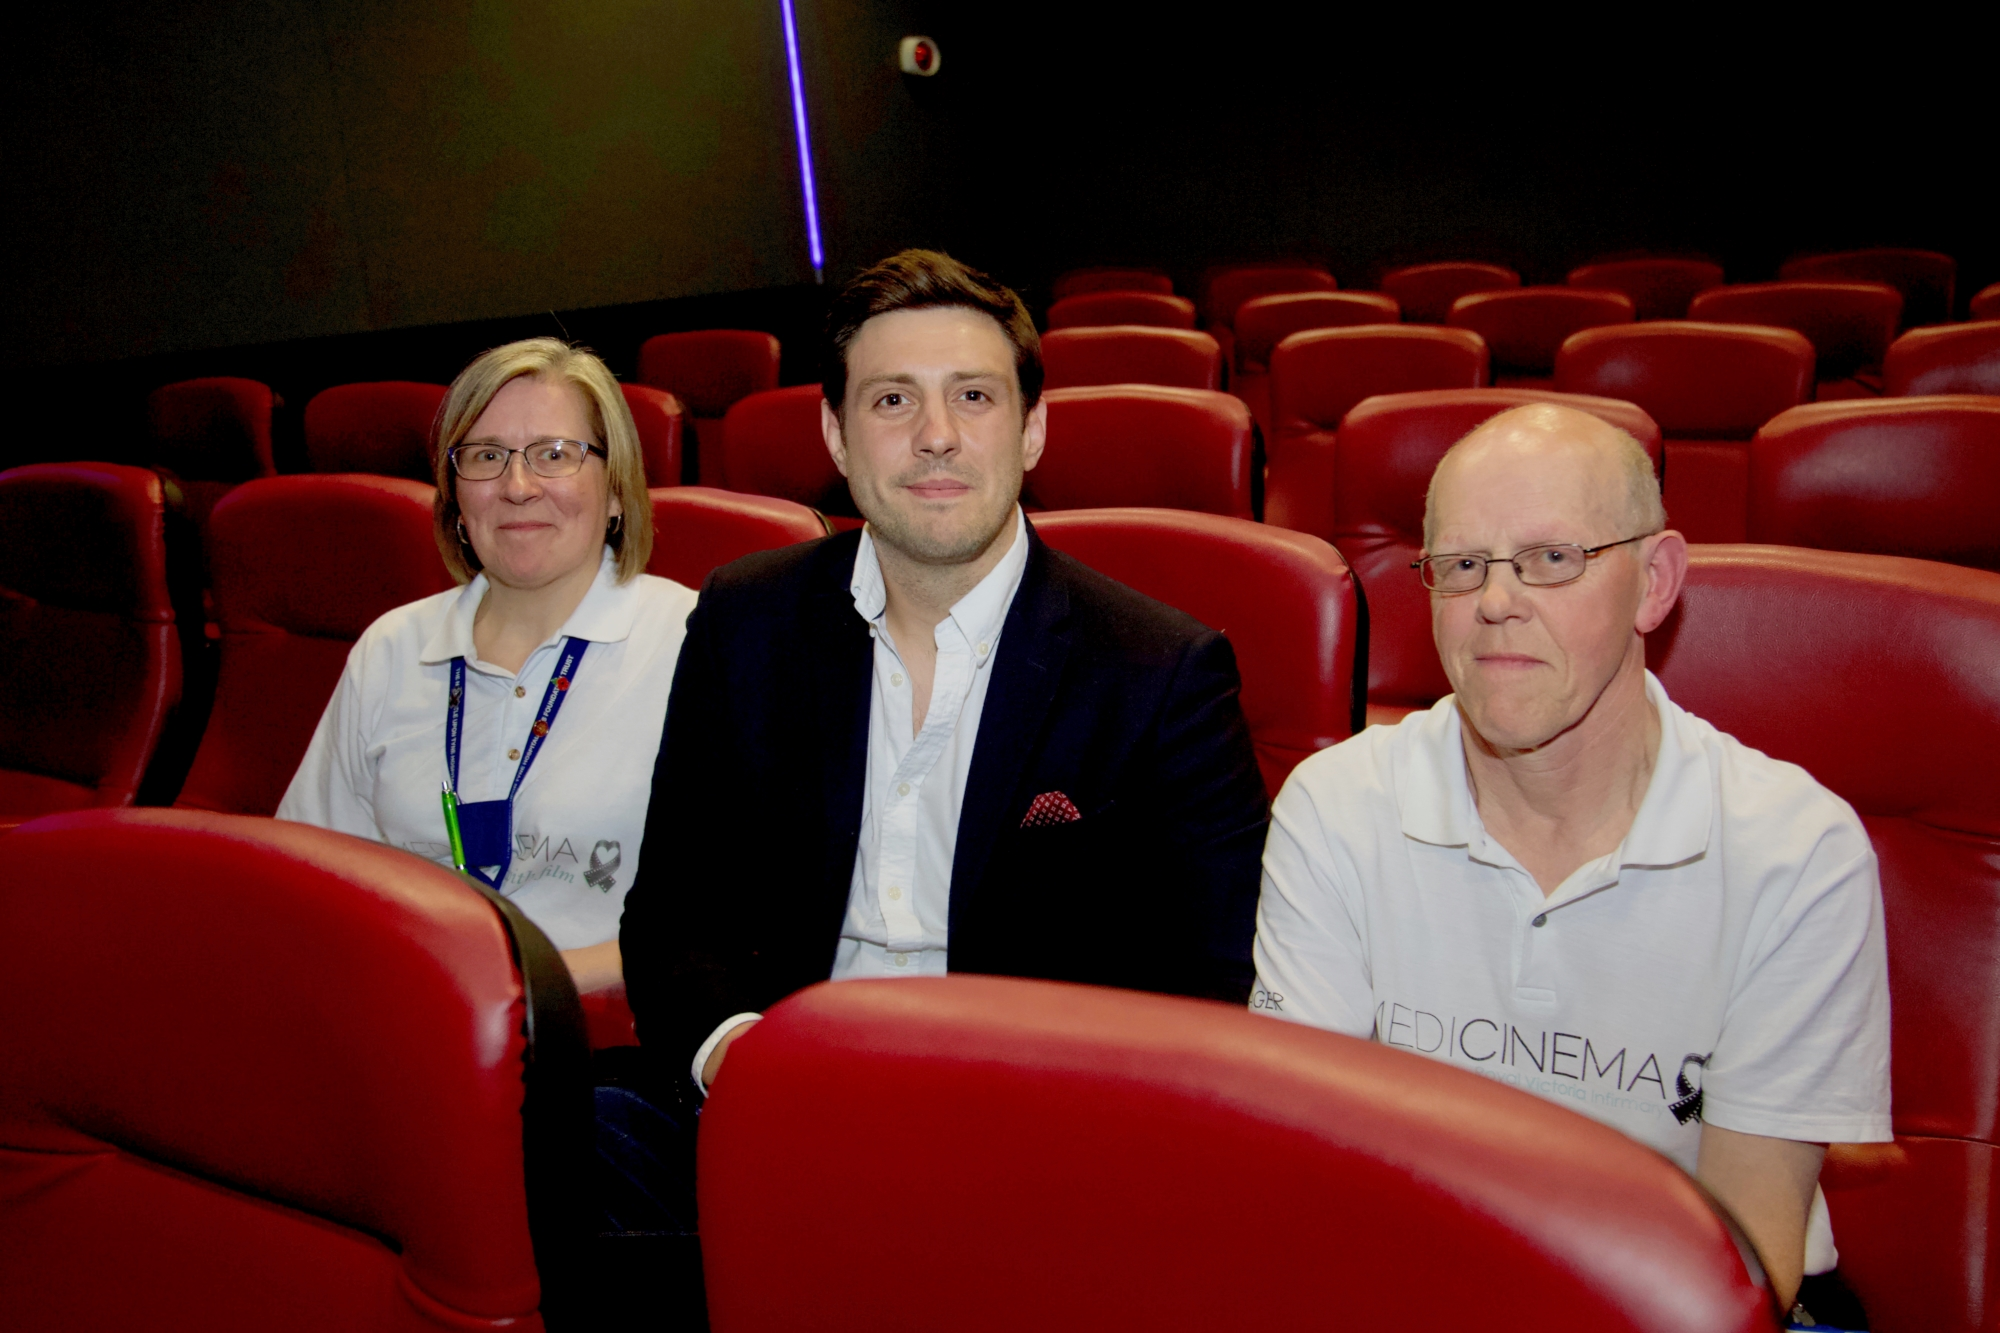 MediCinema Manager Joss Spires; Rob Earnshaw, National Youth Film Academy; and Deputy MediCinema Manager Joe Christie